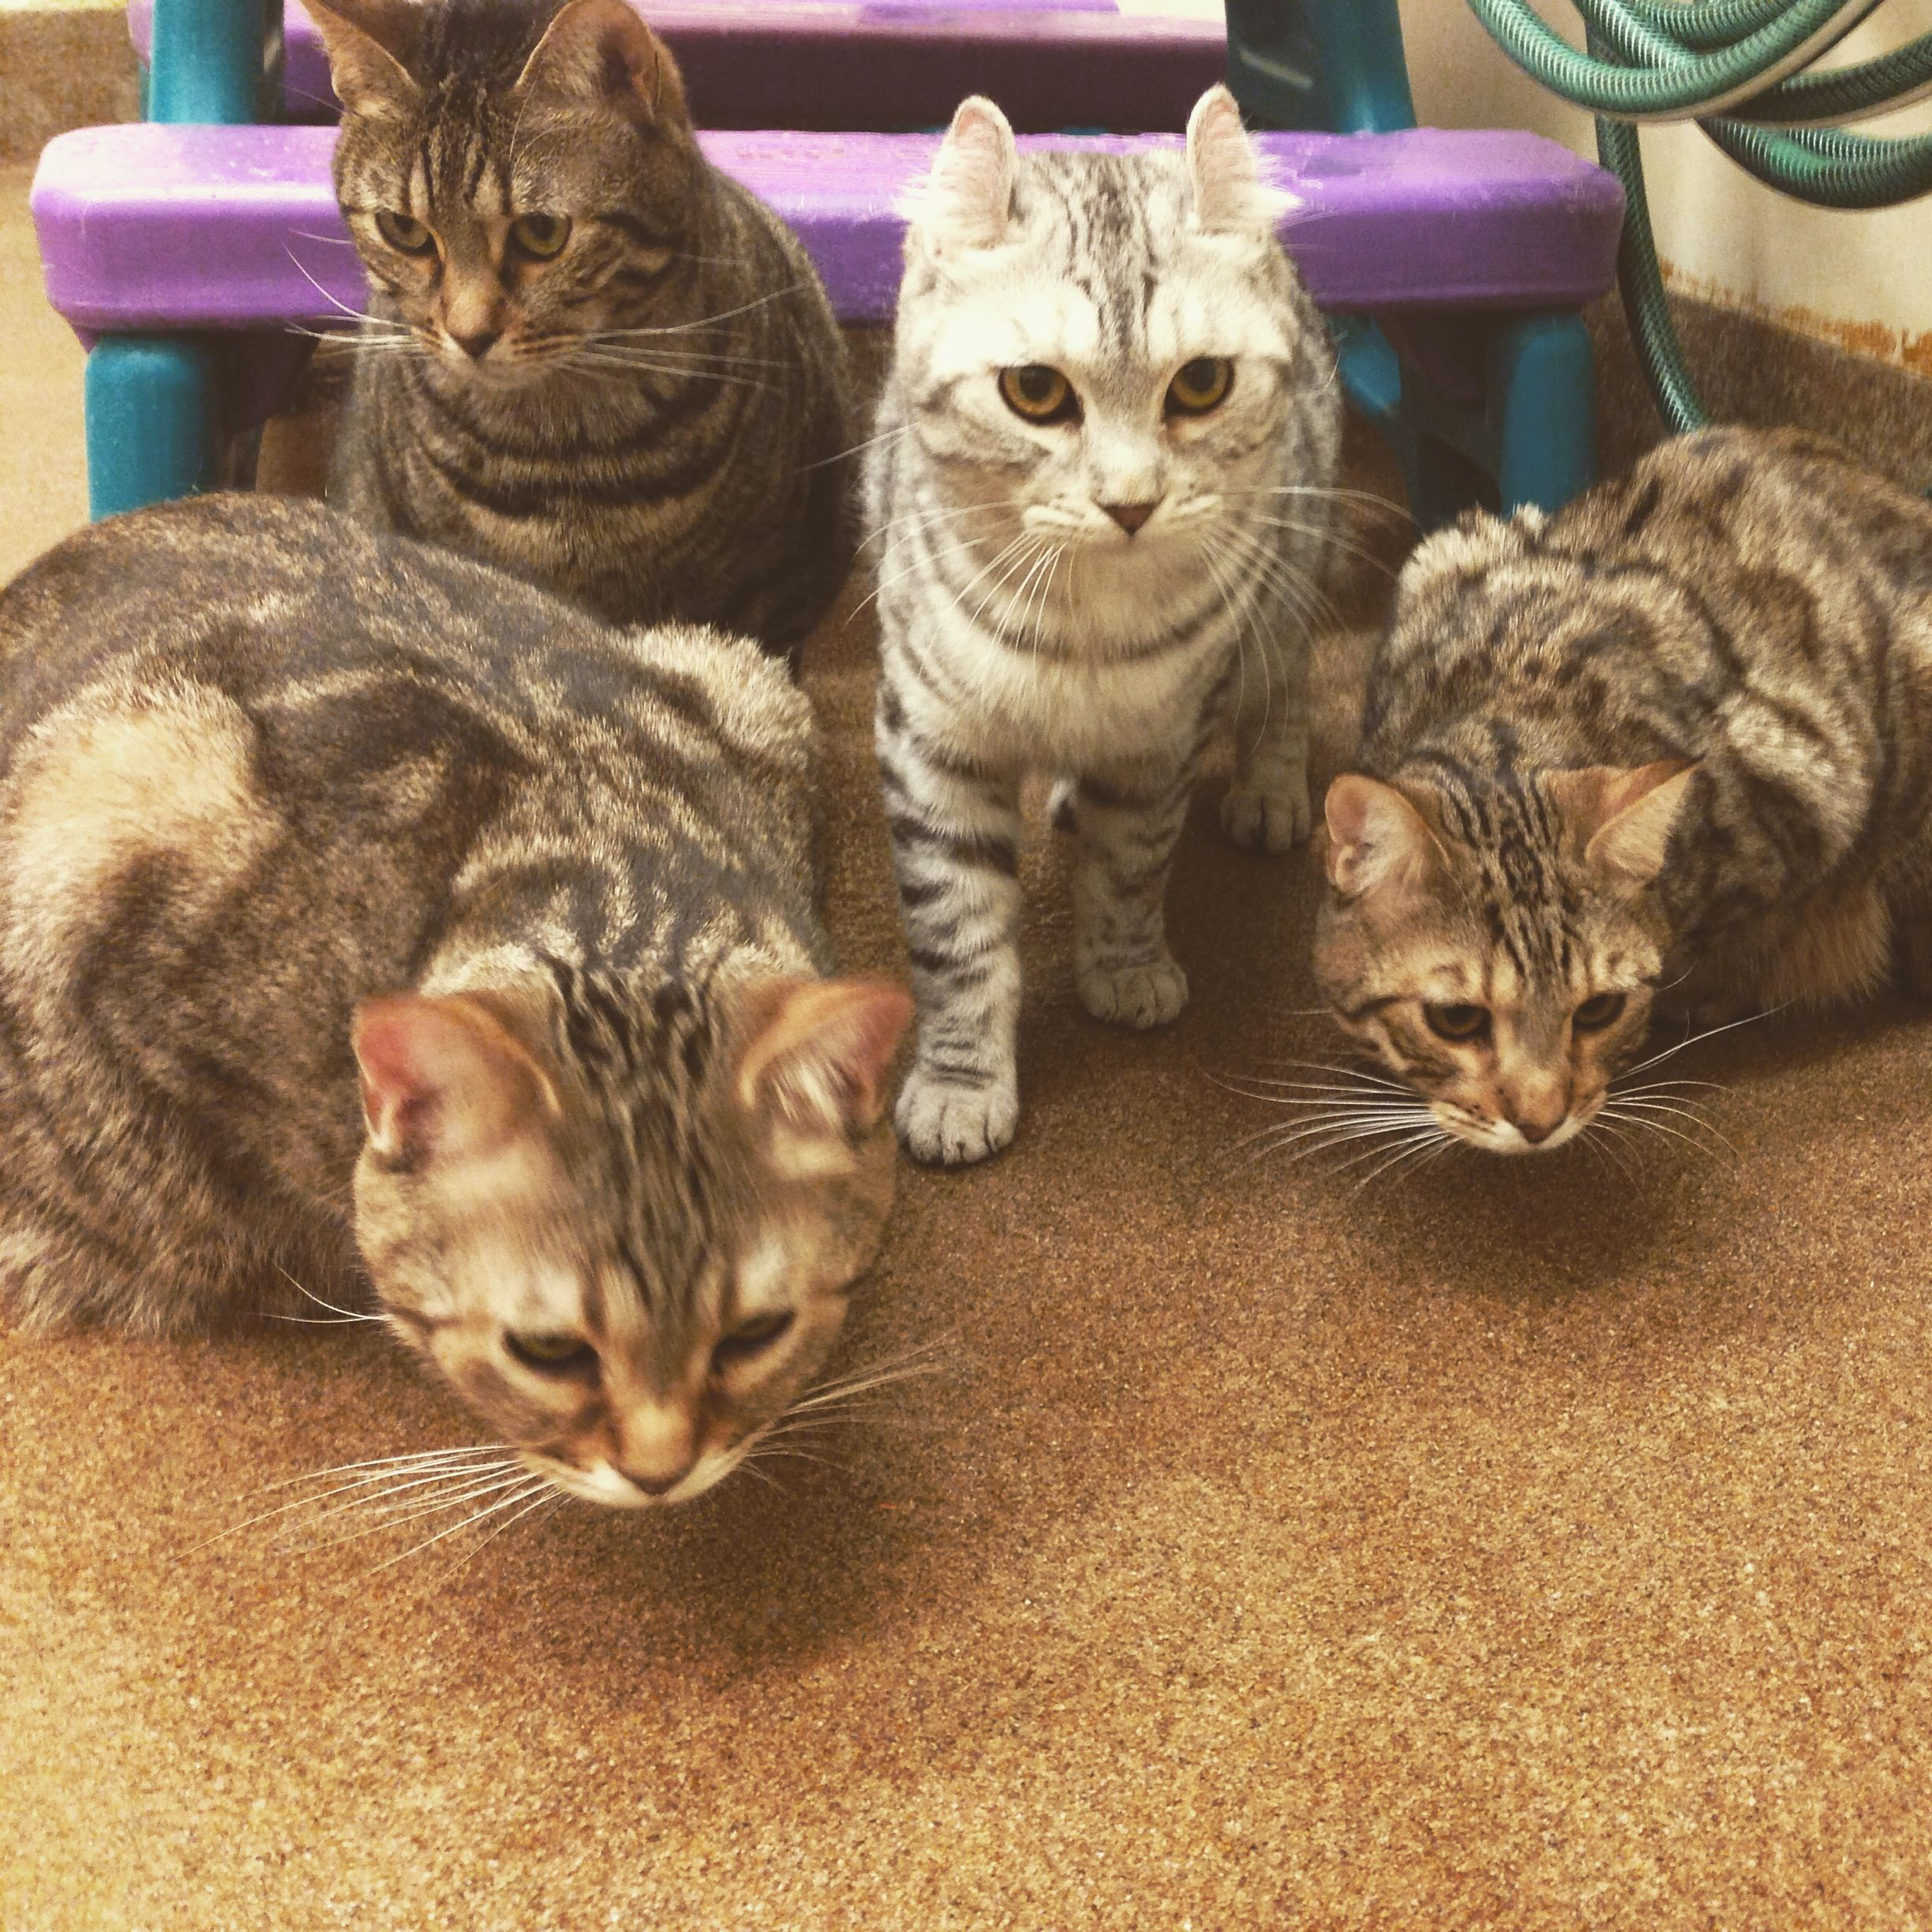 Group Shot Everyone Is Very Interested In Where That Toy Is Going Who Is Going To Get It First Labcats Catsforscience Cats Adorable Cats Kittens Cats Kittens